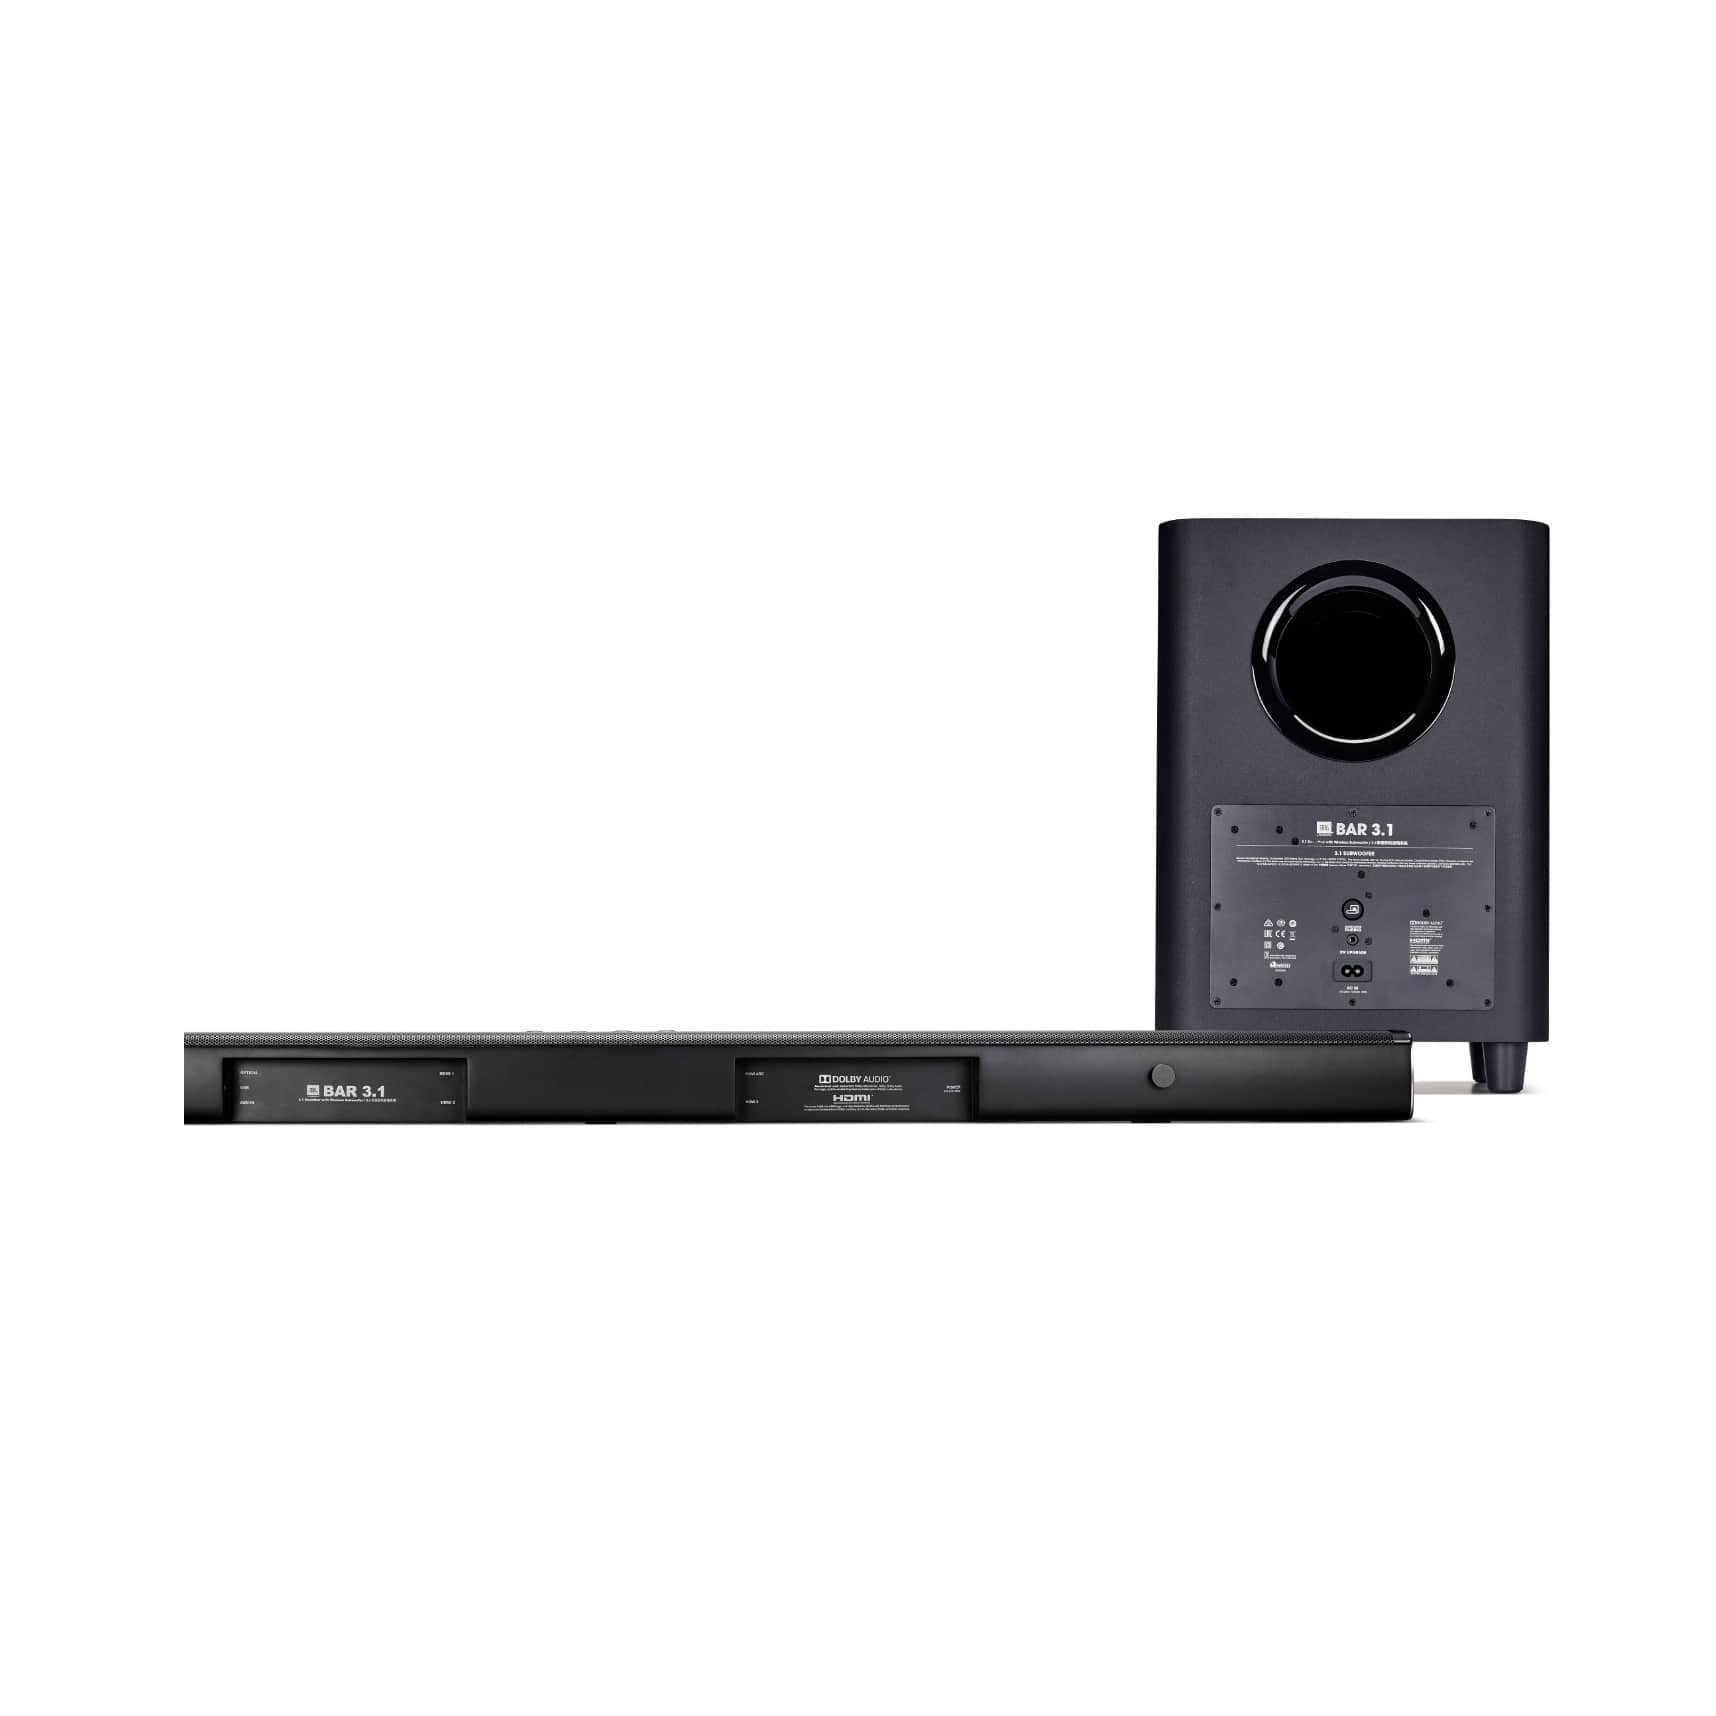 450W 3.1Ch Ultra HD Sound Bar with Wireless Subwoofer